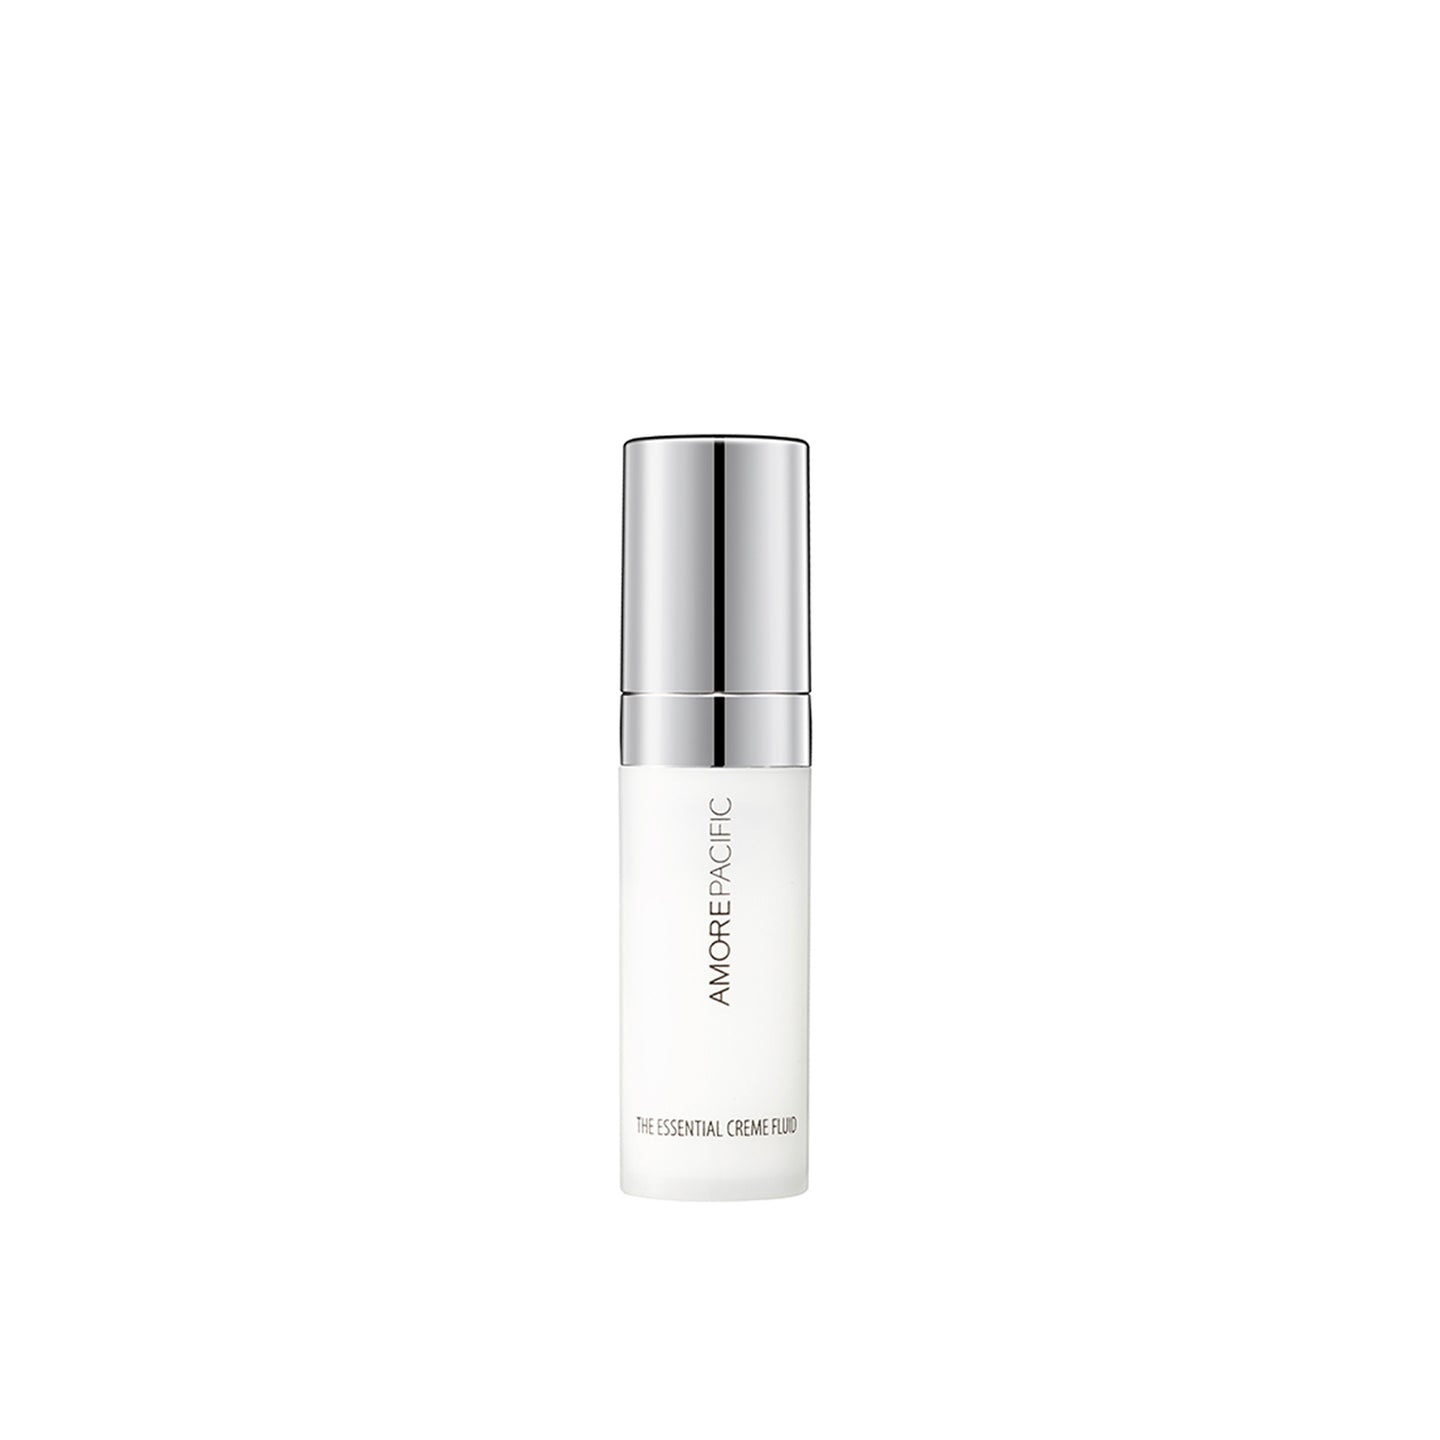 THE ESSENTIAL CREME FLUID (5ml)